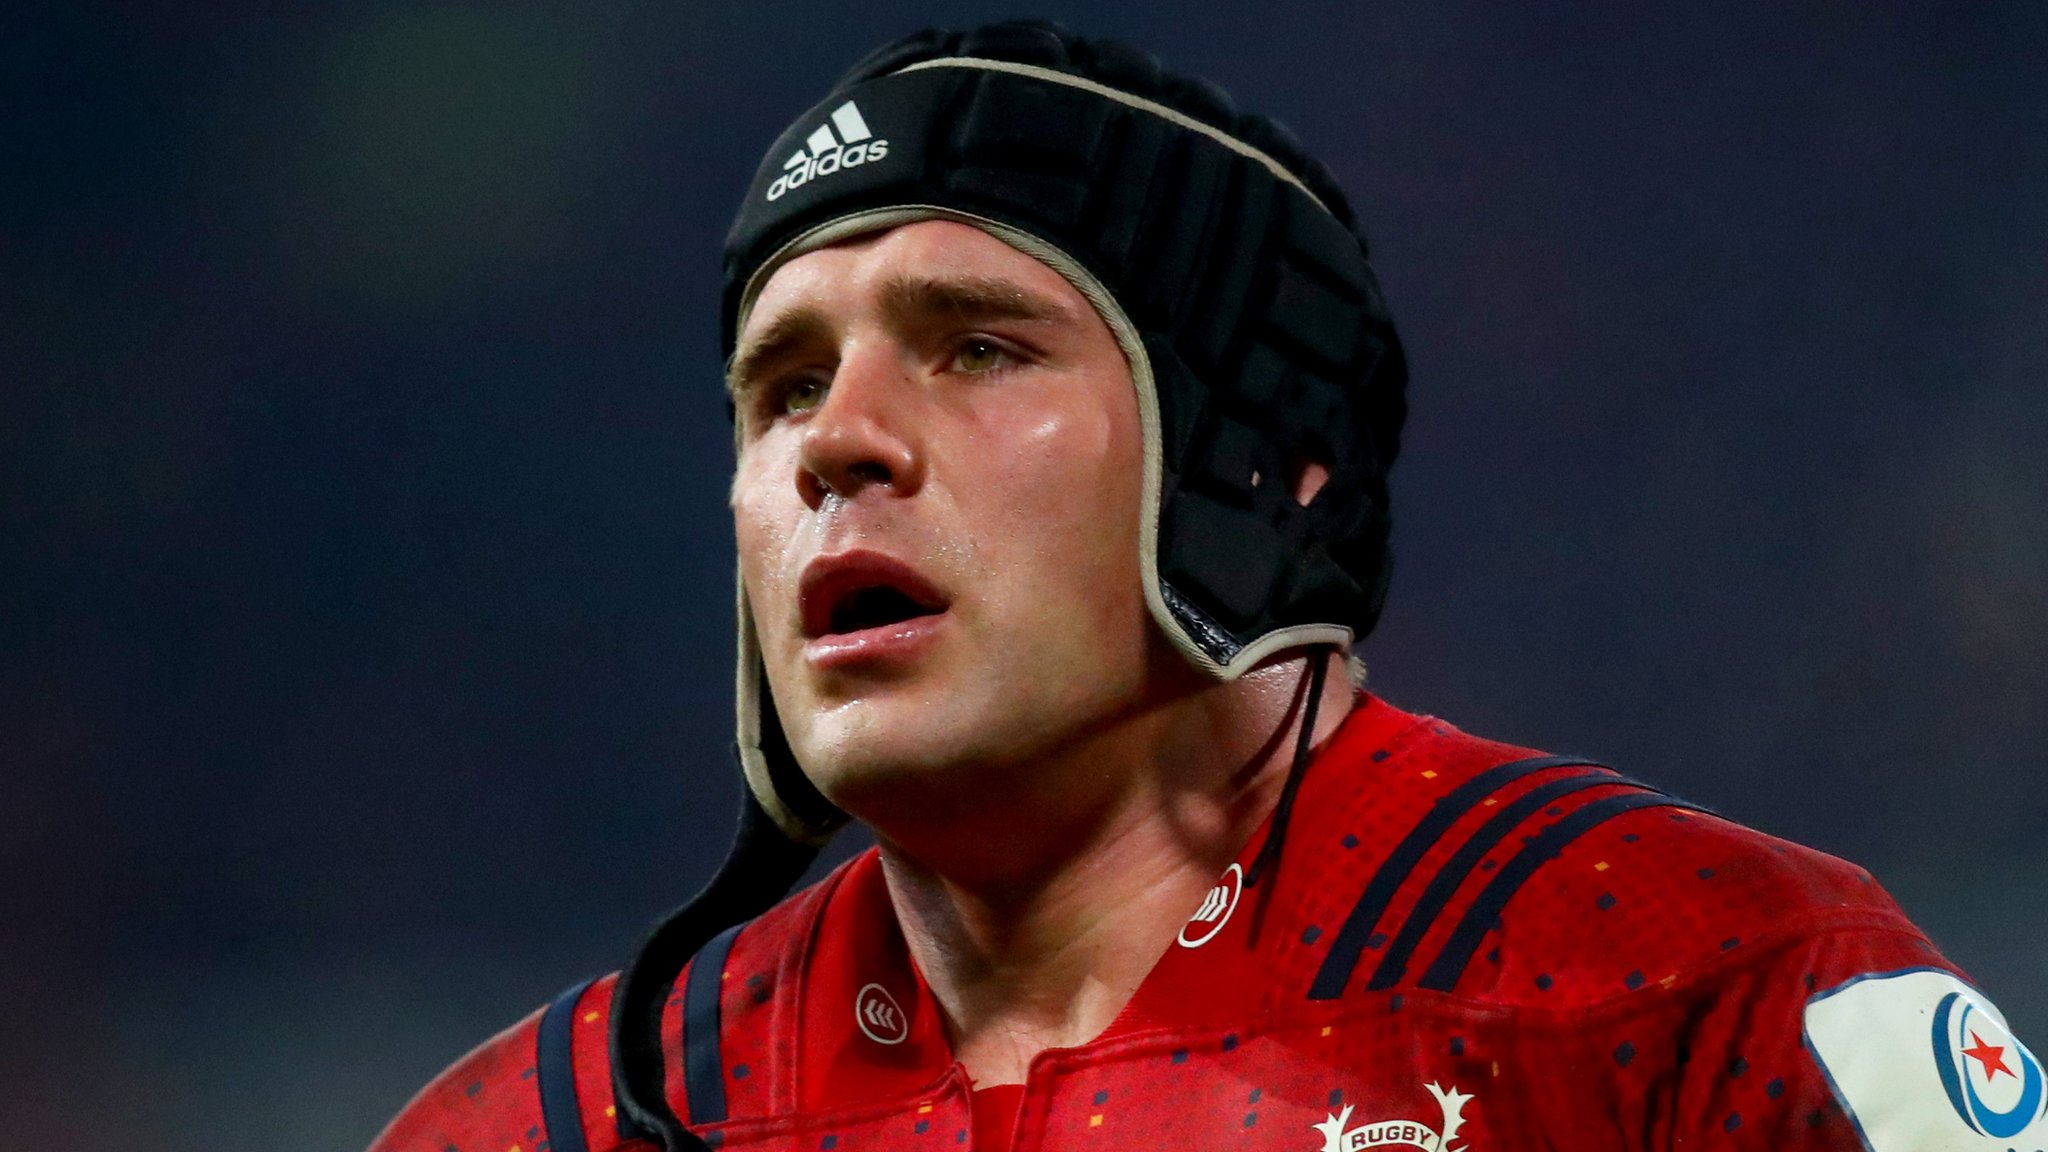 Pro14: CJ Stander to captain Munster in Zebre game as side shows seven changes